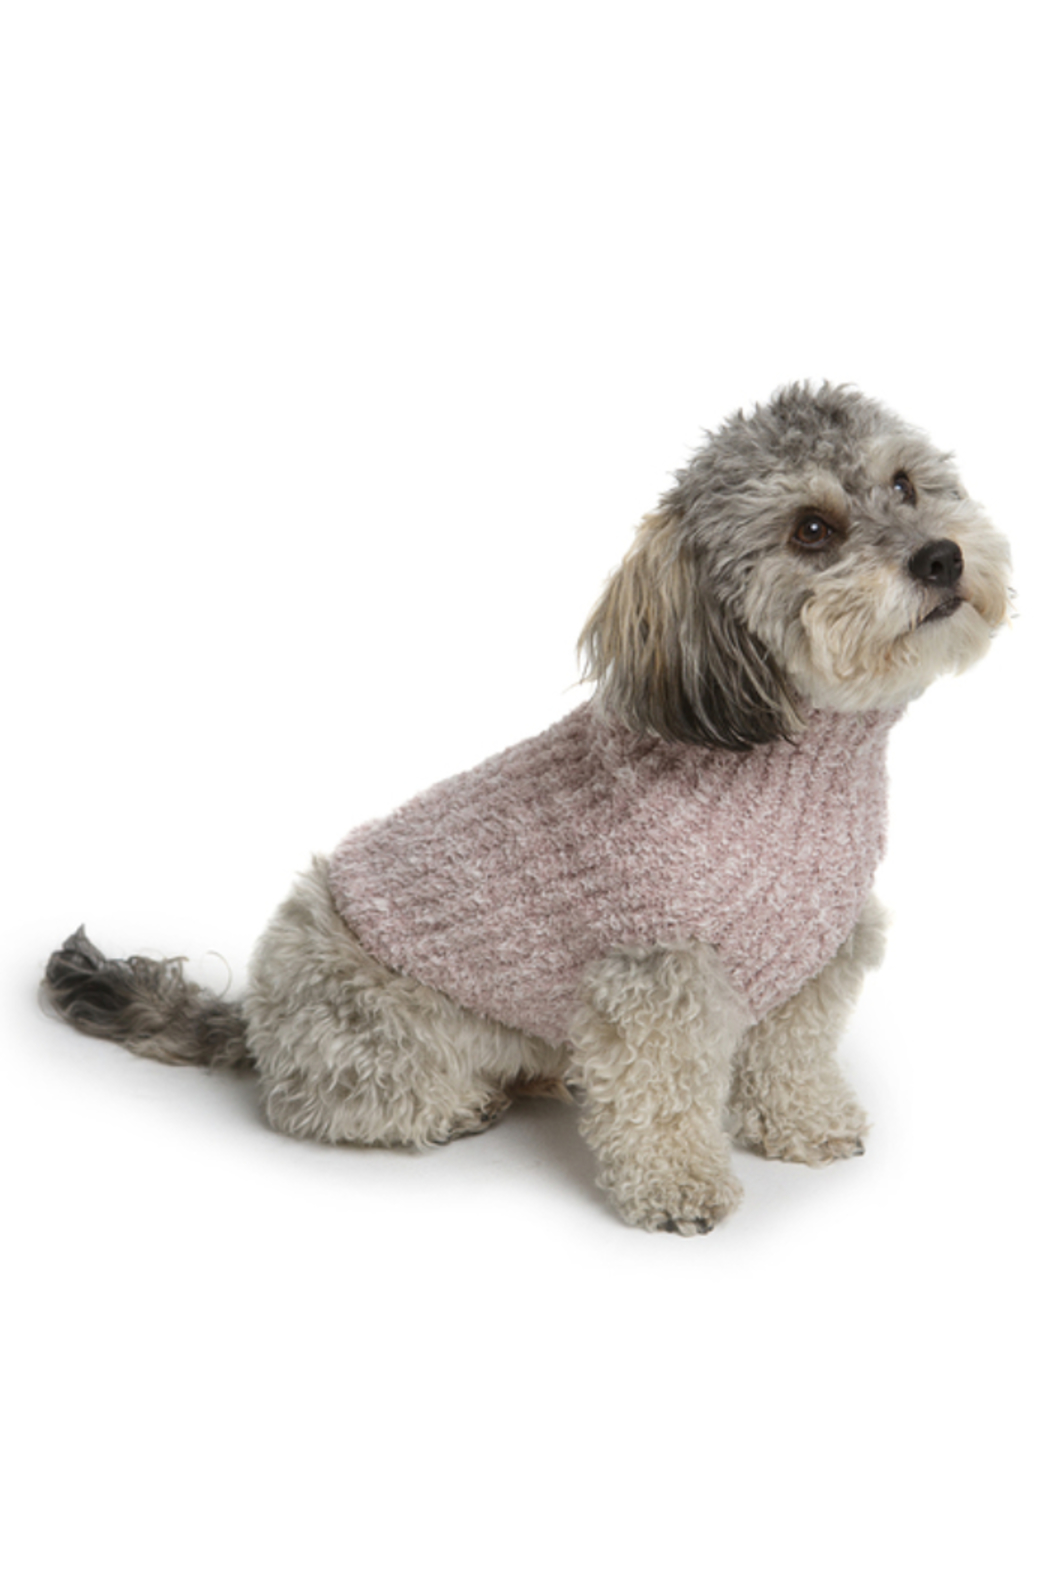 The Birds Nest CC RIBBED PET SWEATER - Main Image